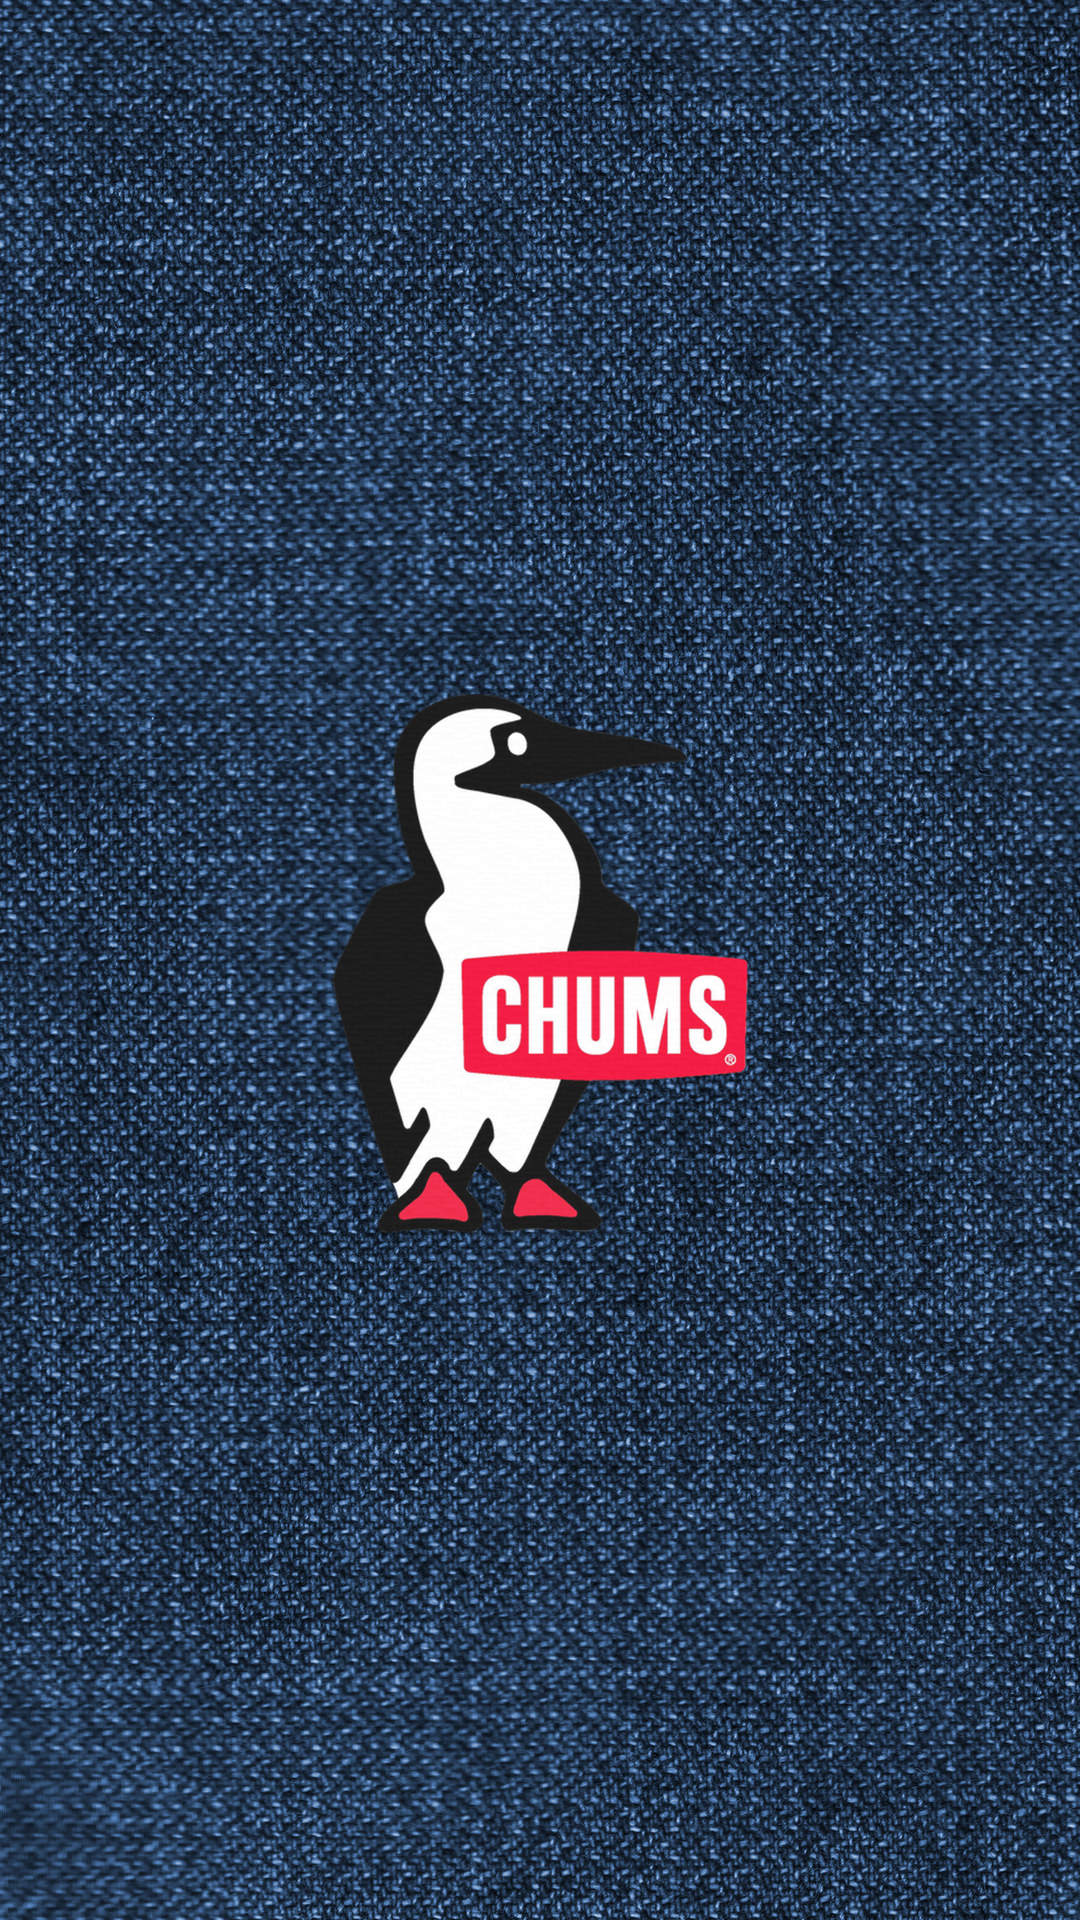 chums28 - 50 CHUMS HQ Smartphone Wallpaper Collection